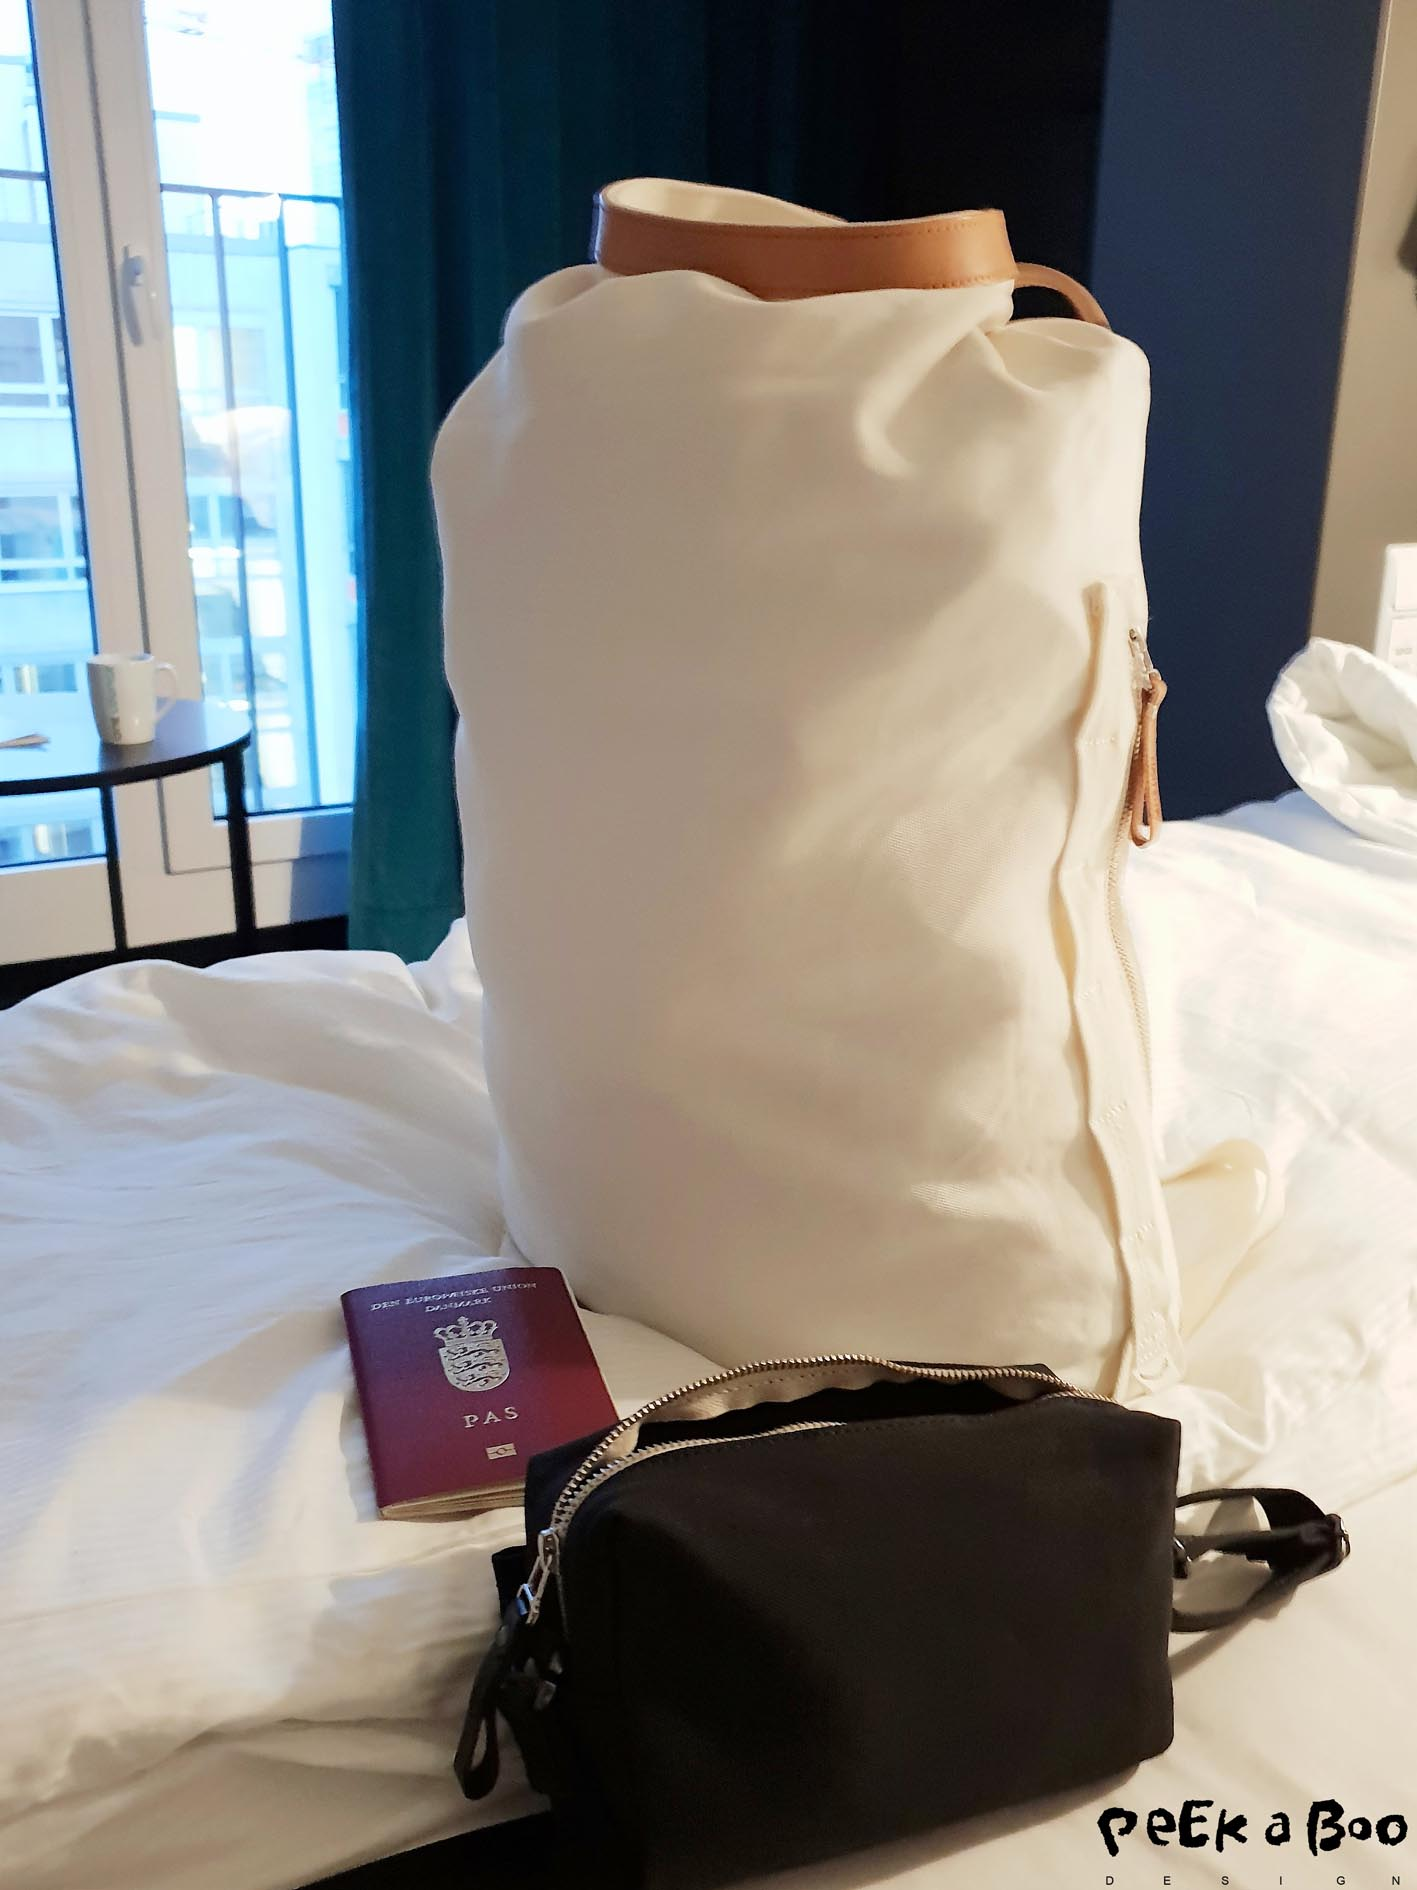 I started my 10 days of vacaction with 2 days at the interior fair ambiente in Frankfurt, so I had to pack for 10 days both business and pleasure in this roll pack from Qwstion.